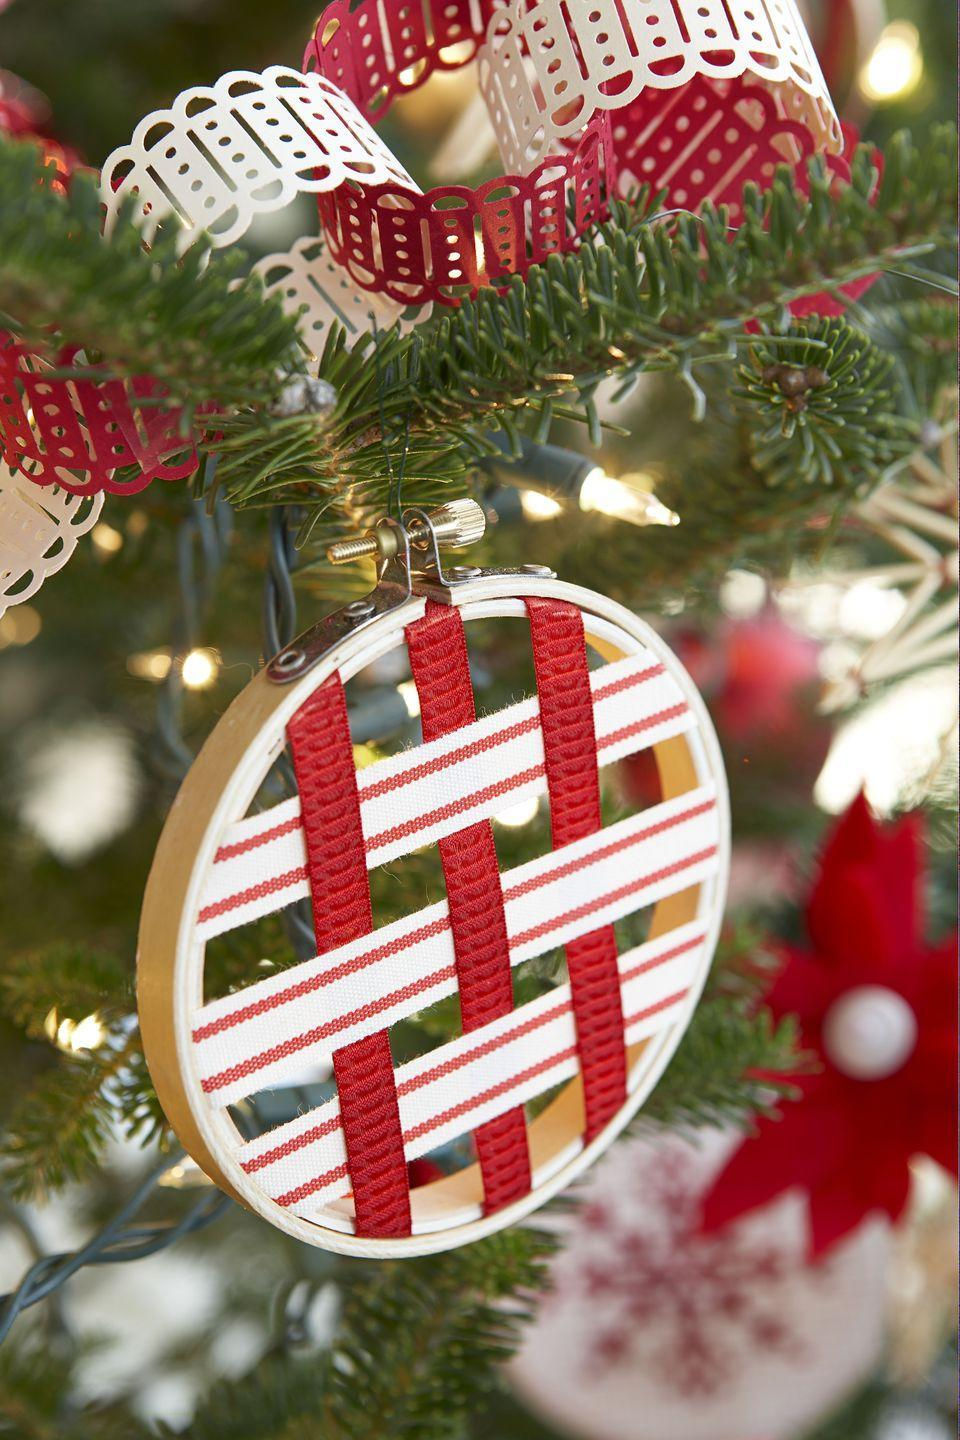 """<p>So you own a hoop, but aren't into embroidery? Good thing the circular shape is just begging to be made into an ornament. After weaving <a href=""""https://www.amazon.com/Christmas-Grosgrain-Multicolor-Metallic-Glitter-Ribbons/dp/B07J1QBQW9?tag=syn-yahoo-20&ascsubtag=%5Bartid%7C10055.g.2996%5Bsrc%7Cyahoo-us"""" rel=""""nofollow noopener"""" target=""""_blank"""" data-ylk=""""slk:ribbon"""" class=""""link rapid-noclick-resp"""">ribbon</a> inside the circle and adding a hook on top, this hoop is ready to hang front and center on your tree. </p><p><em><a href=""""https://www.goodhousekeeping.com/holidays/christmas-ideas/g469/scandinavian-christmas-decorations/?slide=9"""" rel=""""nofollow noopener"""" target=""""_blank"""" data-ylk=""""slk:Get the tutorial »"""" class=""""link rapid-noclick-resp"""">Get the tutorial »</a></em></p>"""